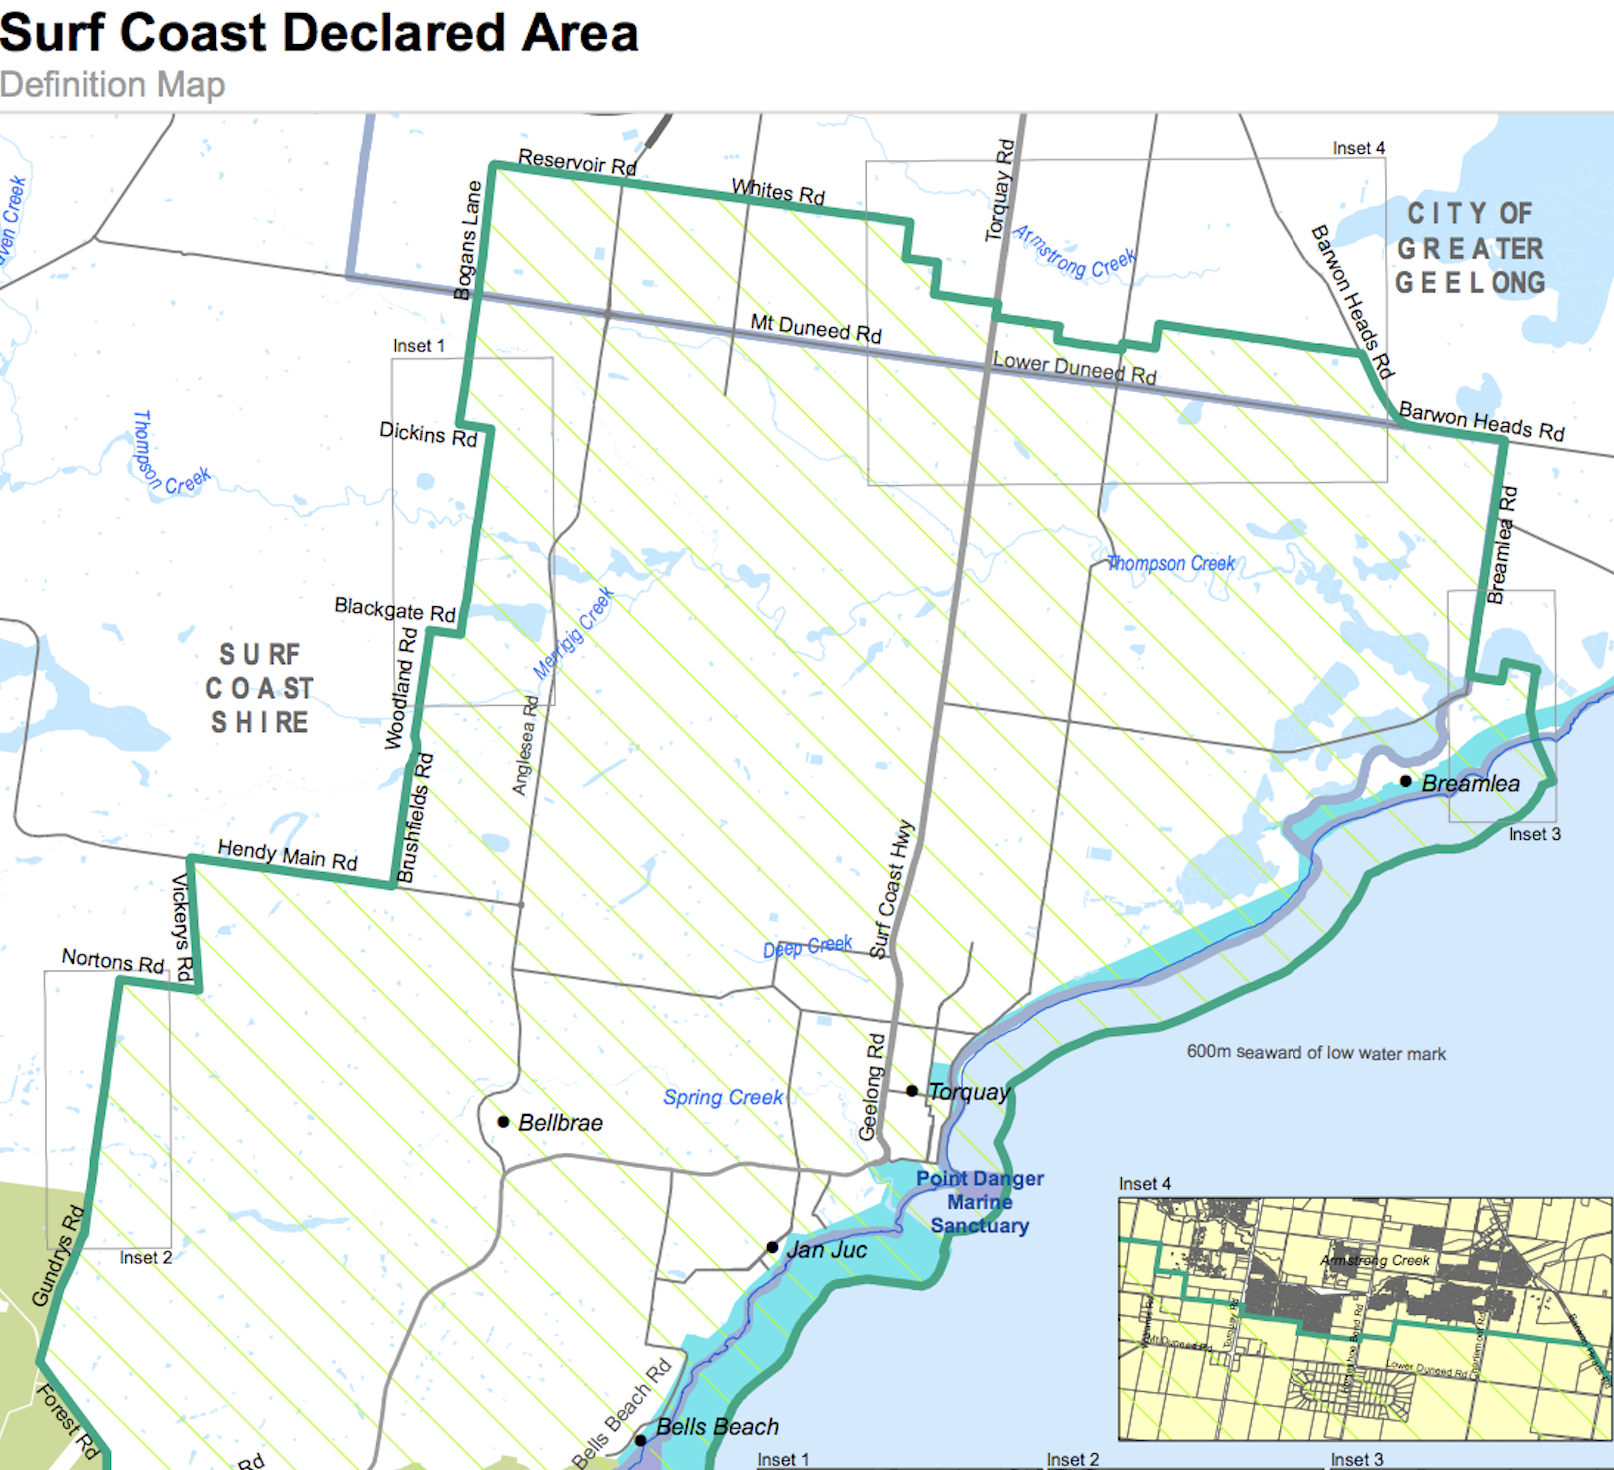 The declared area covers Torquay and Jan Juc, and expands along the coastline from the Great Otway National Park to Breamlea Flora and Fauna Reserve.